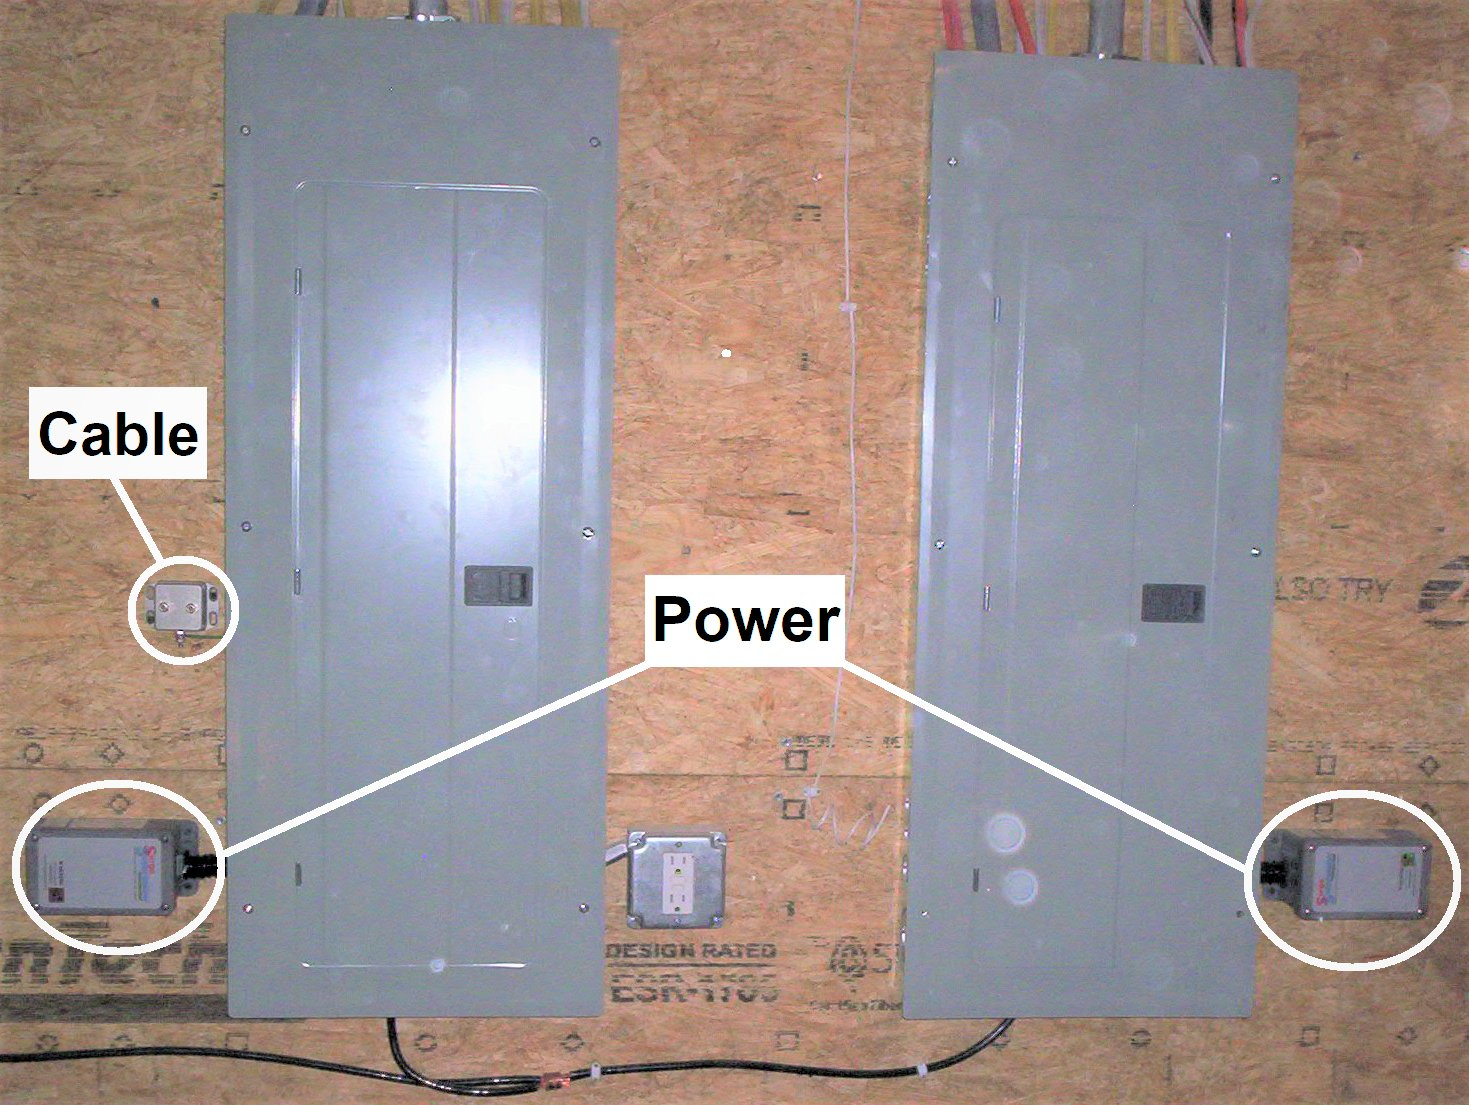 Installation of High Quality, High Performance, Whole House Surge Protectors. Both Power Panels and Coaxial Line Are Protected. Get the Right Gear!